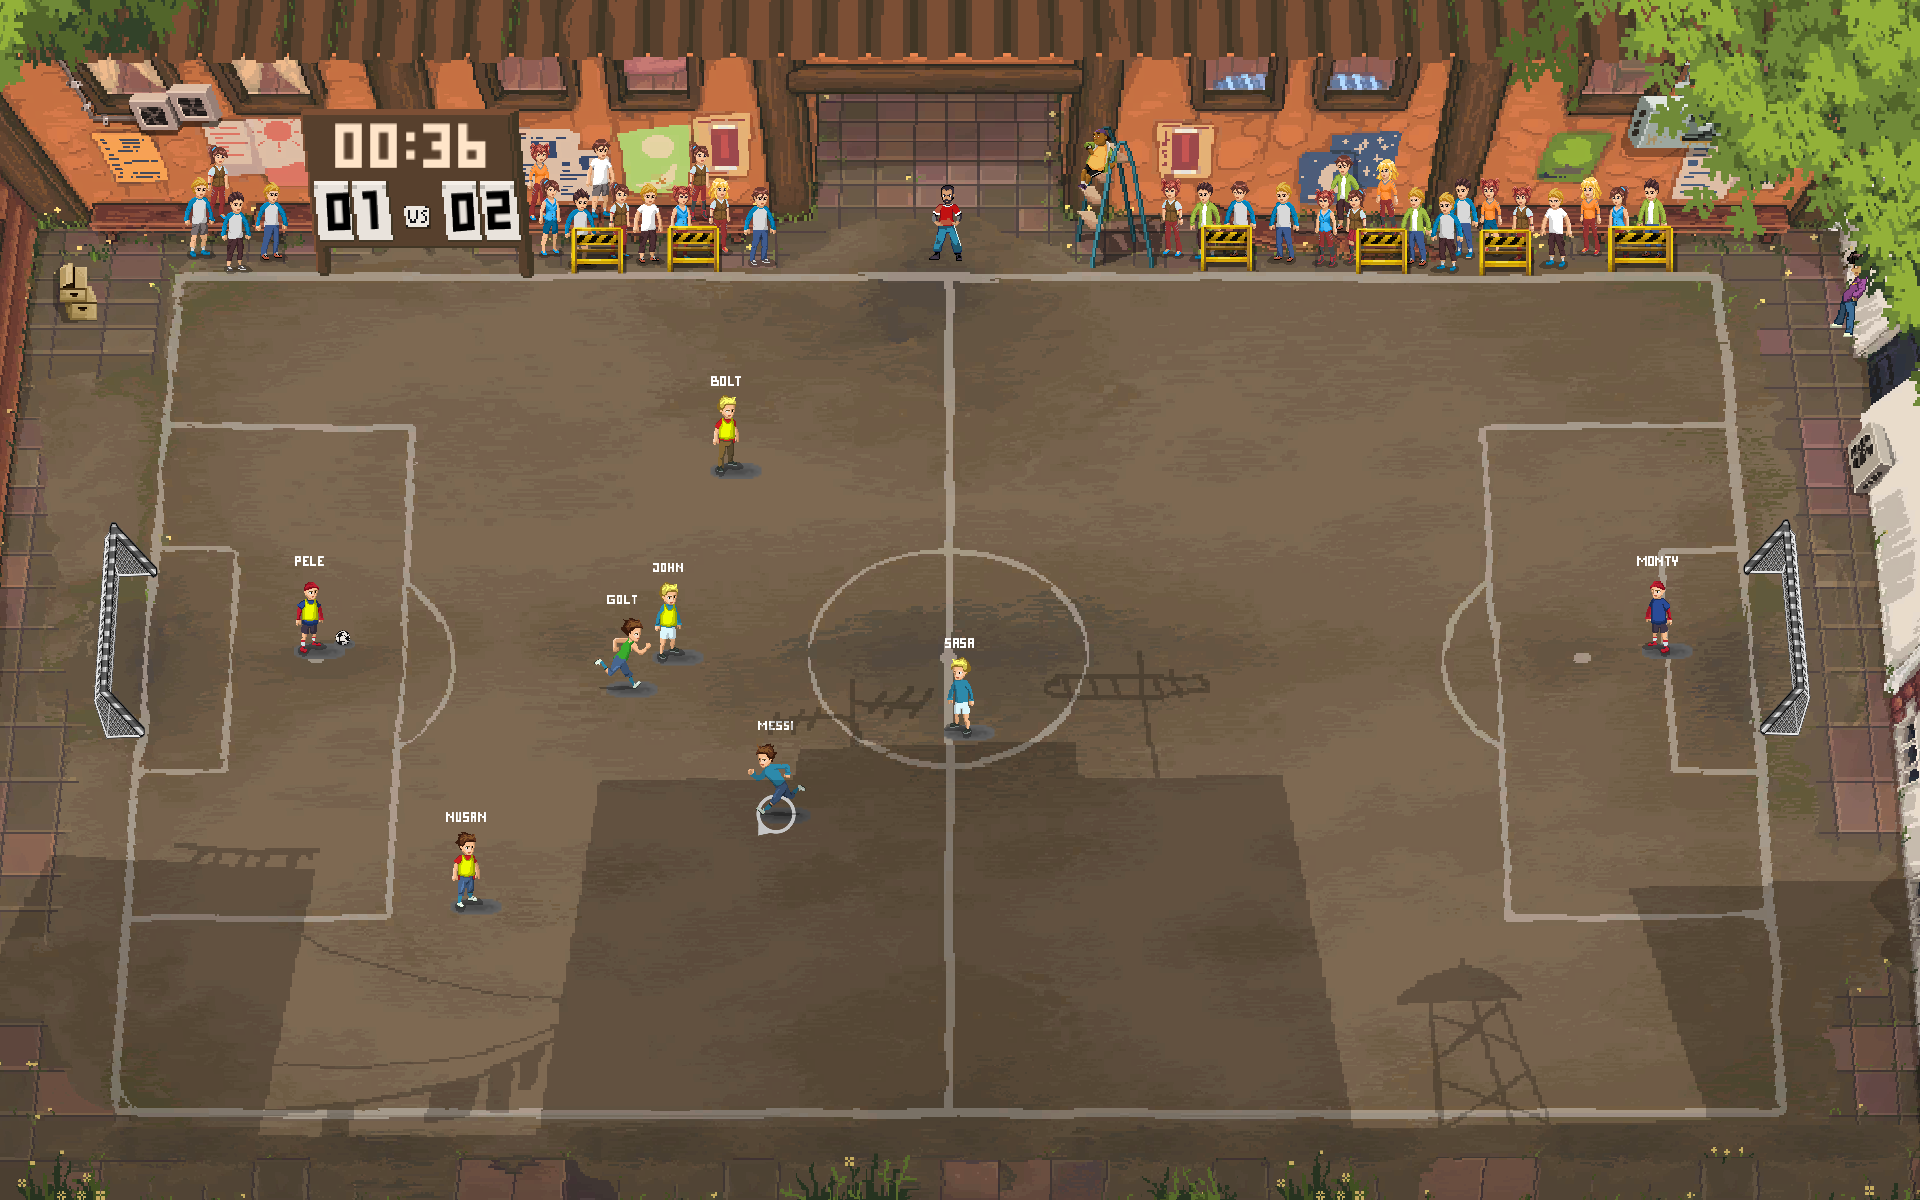 Football Story blends a narrative campaign with competitive